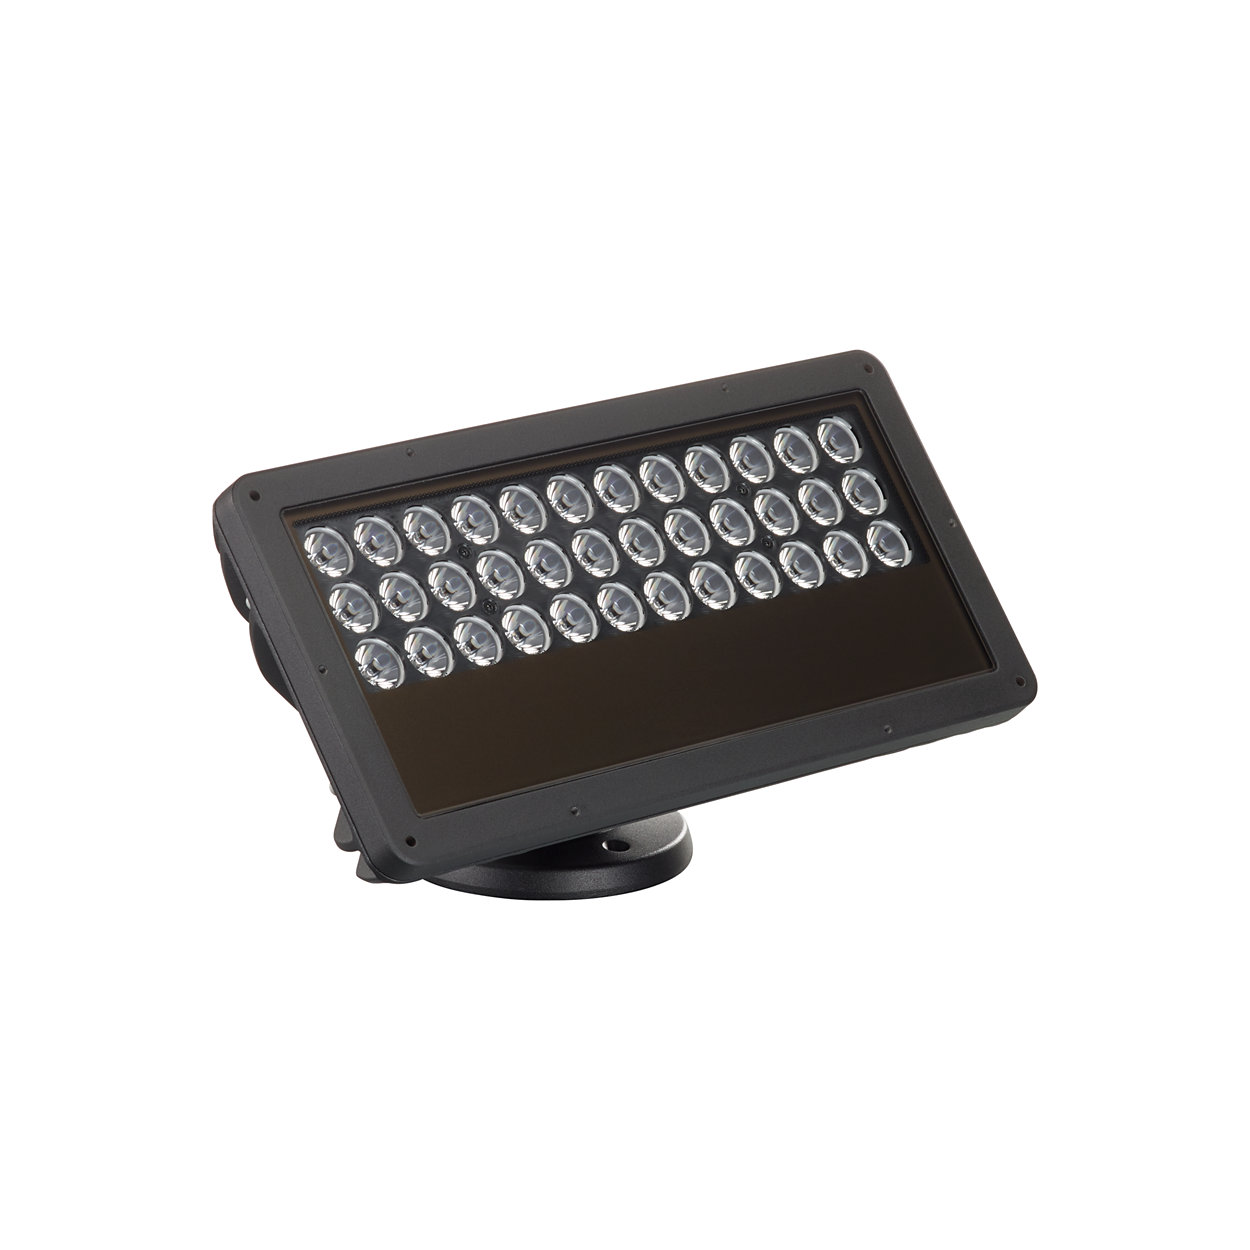 ColorBlast RGBA/RGBW Powercore gen4 - Customizable exterior LED flood luminaire with intelligent color light